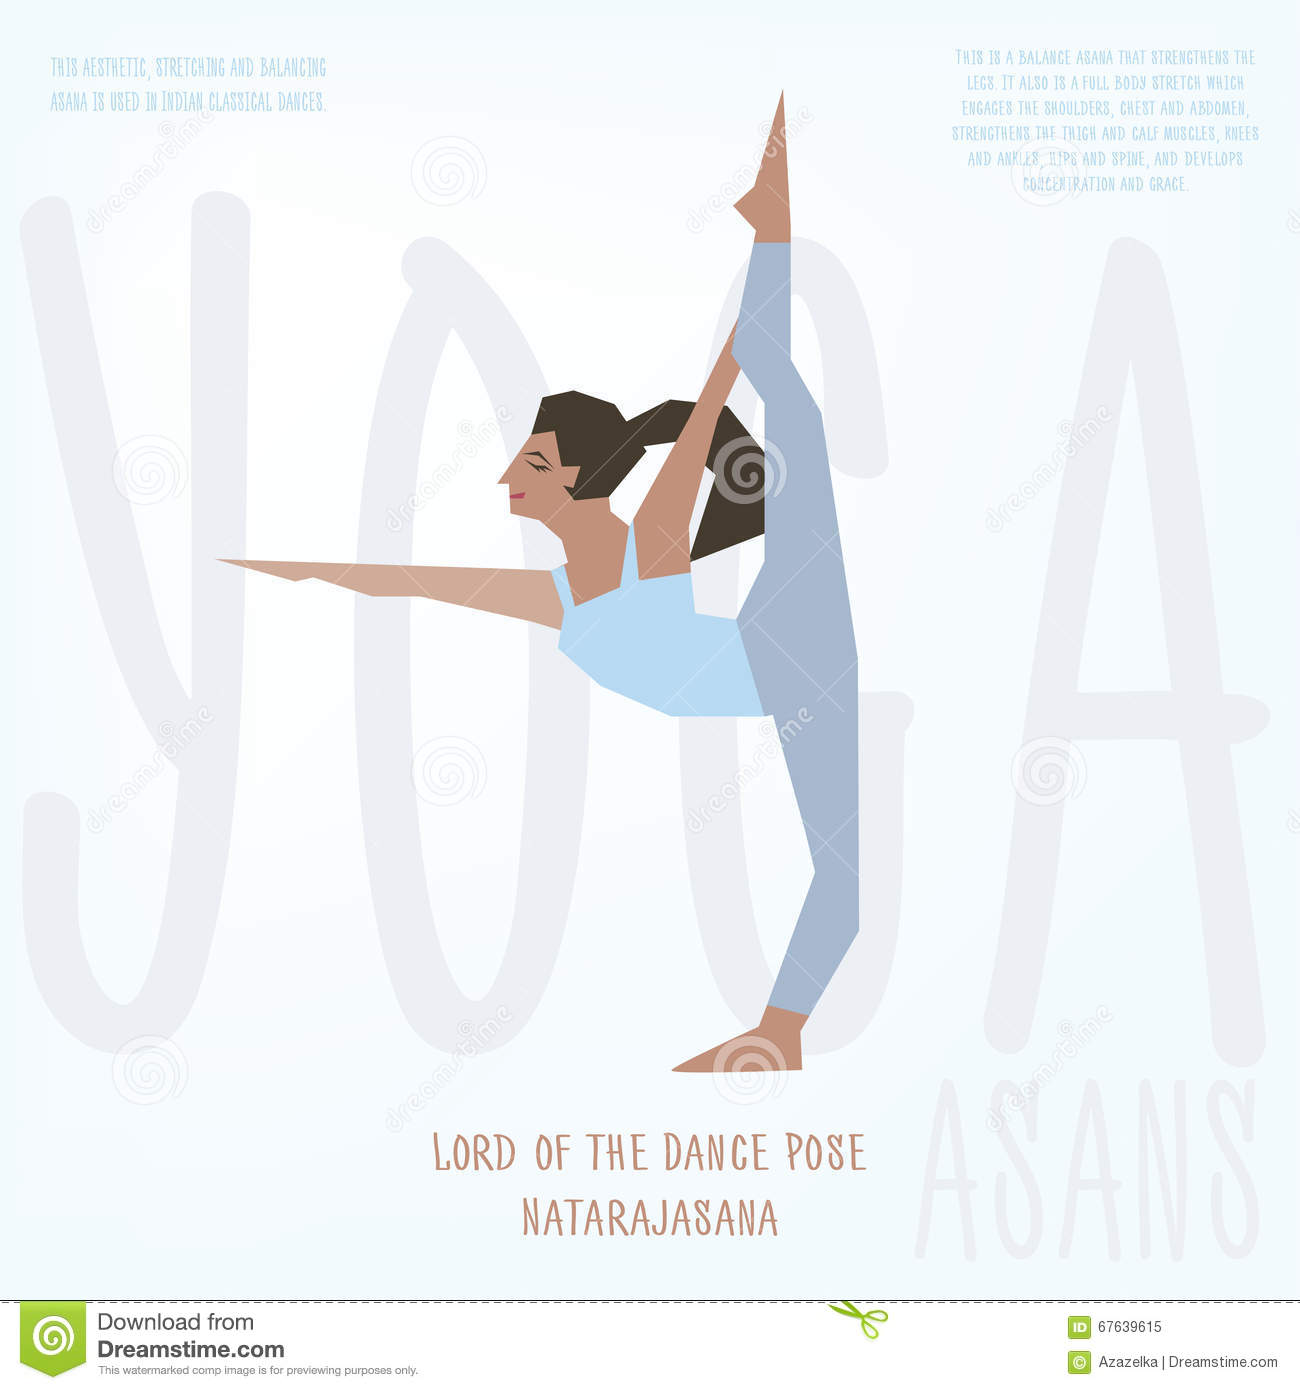 Download Lord Of Dance Natarajasana Asana Vector Illustrated Poster Template With Girl Doing